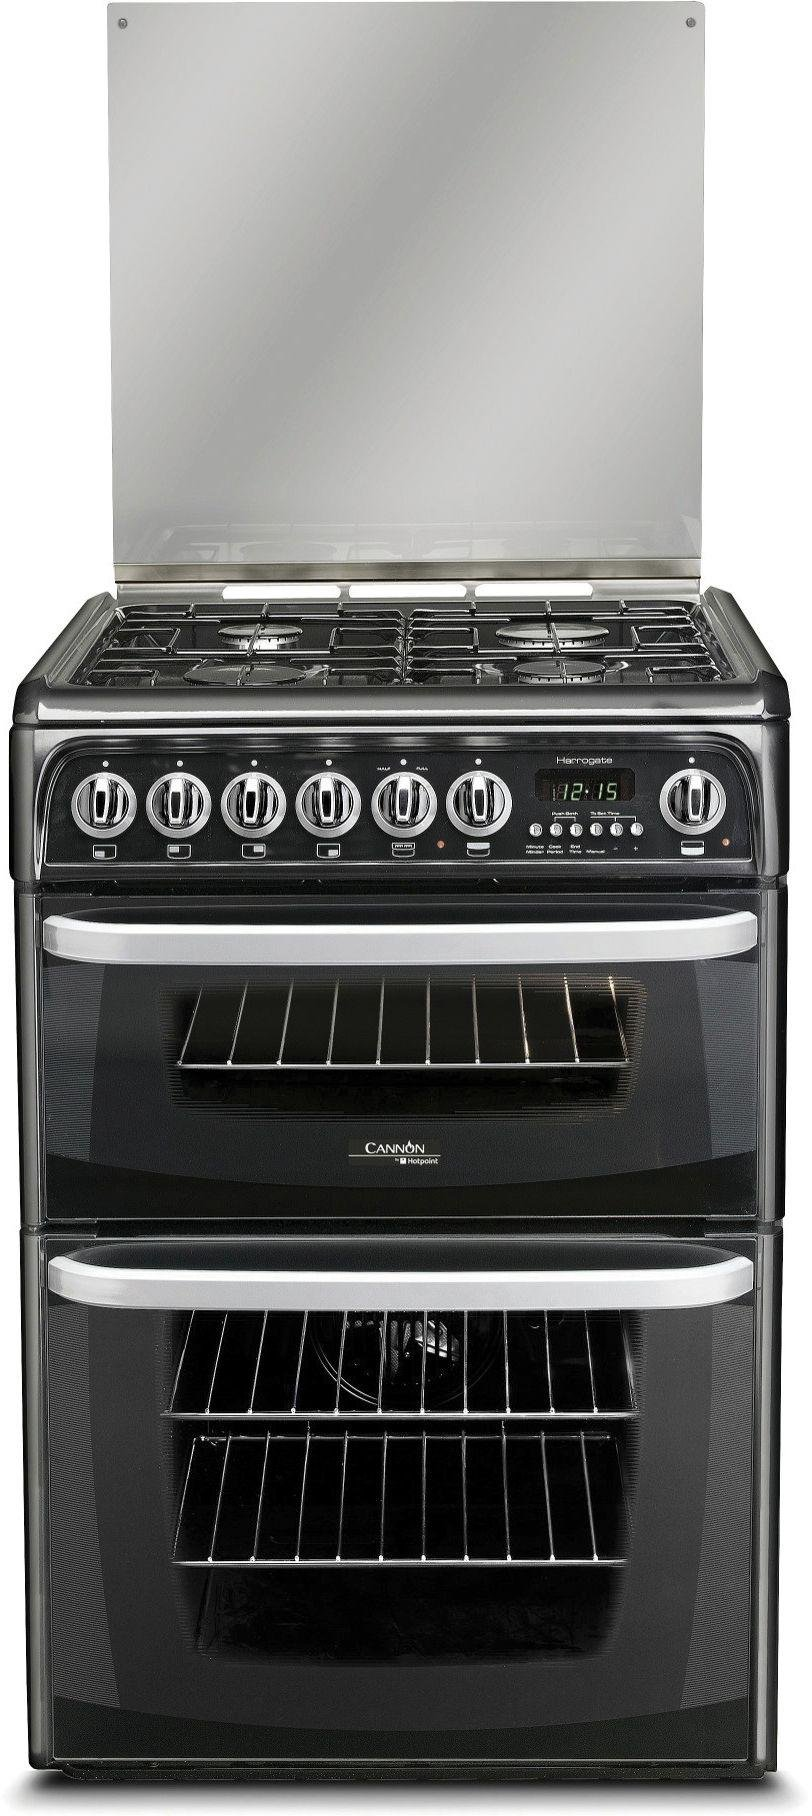 Hotpoint Cannon CH60GCIK Gas Cooker - Black.